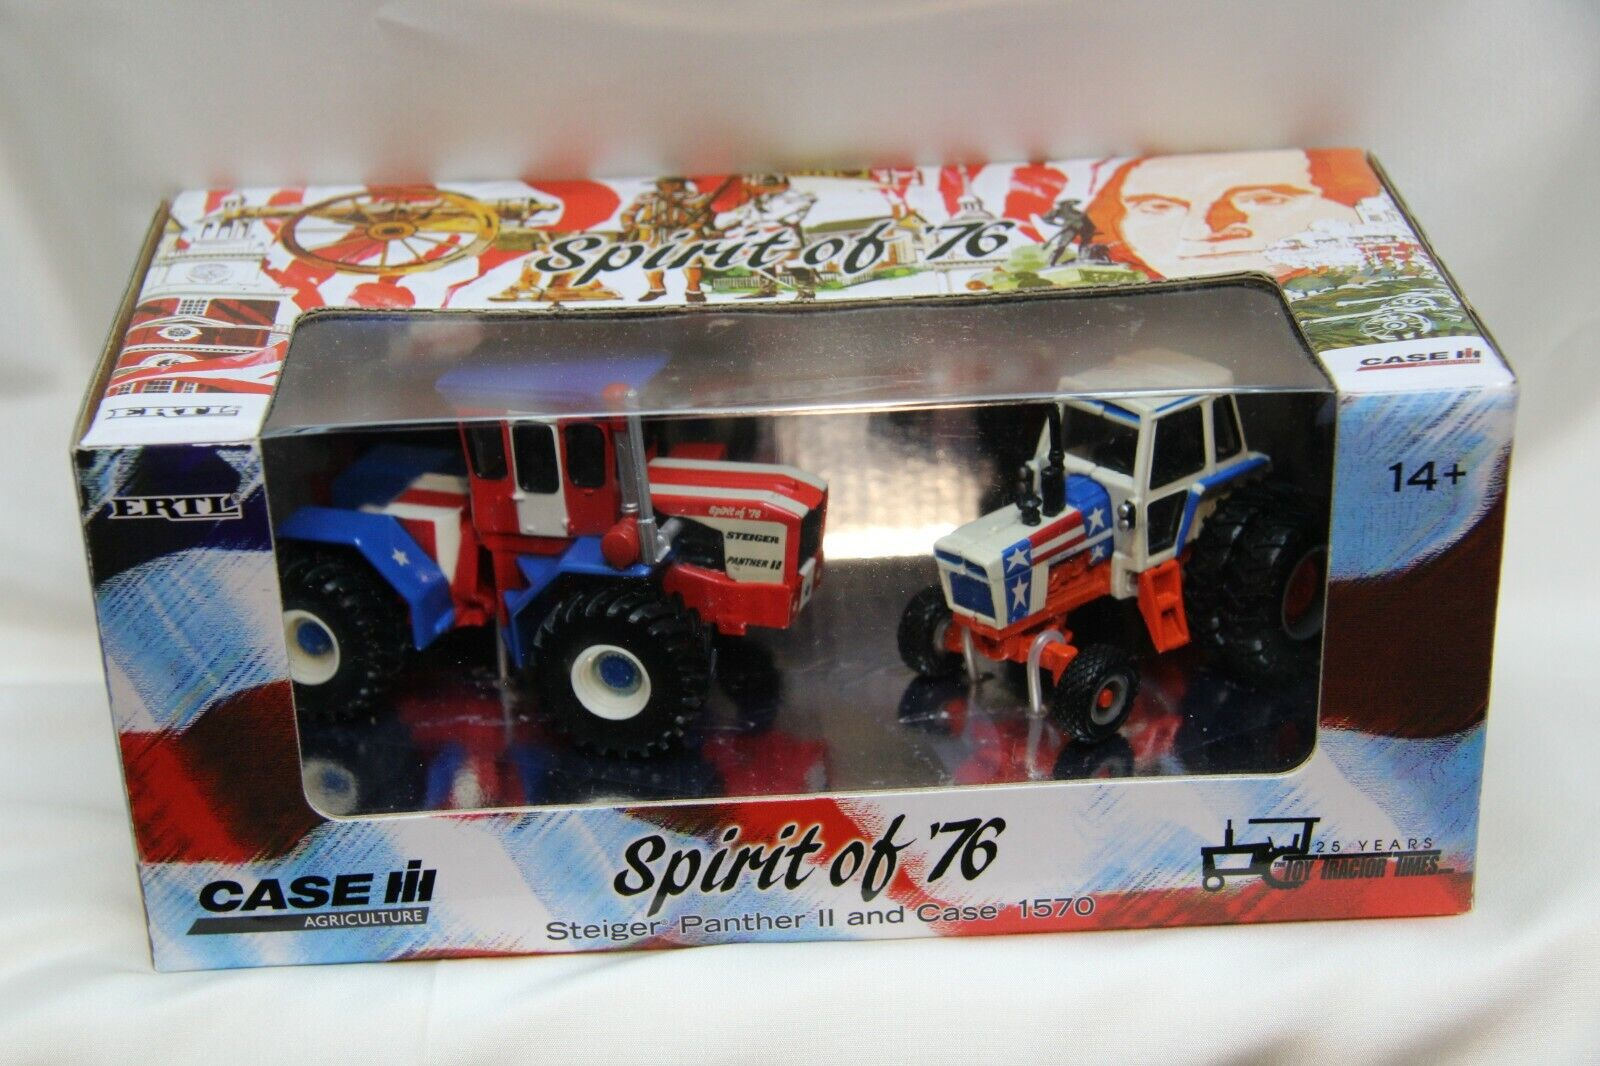 ERTL 1:64 STEIGER PANTHER II and CASE 1570 SPIRIT OF 76 TRACTOR SET IH Toy Tract